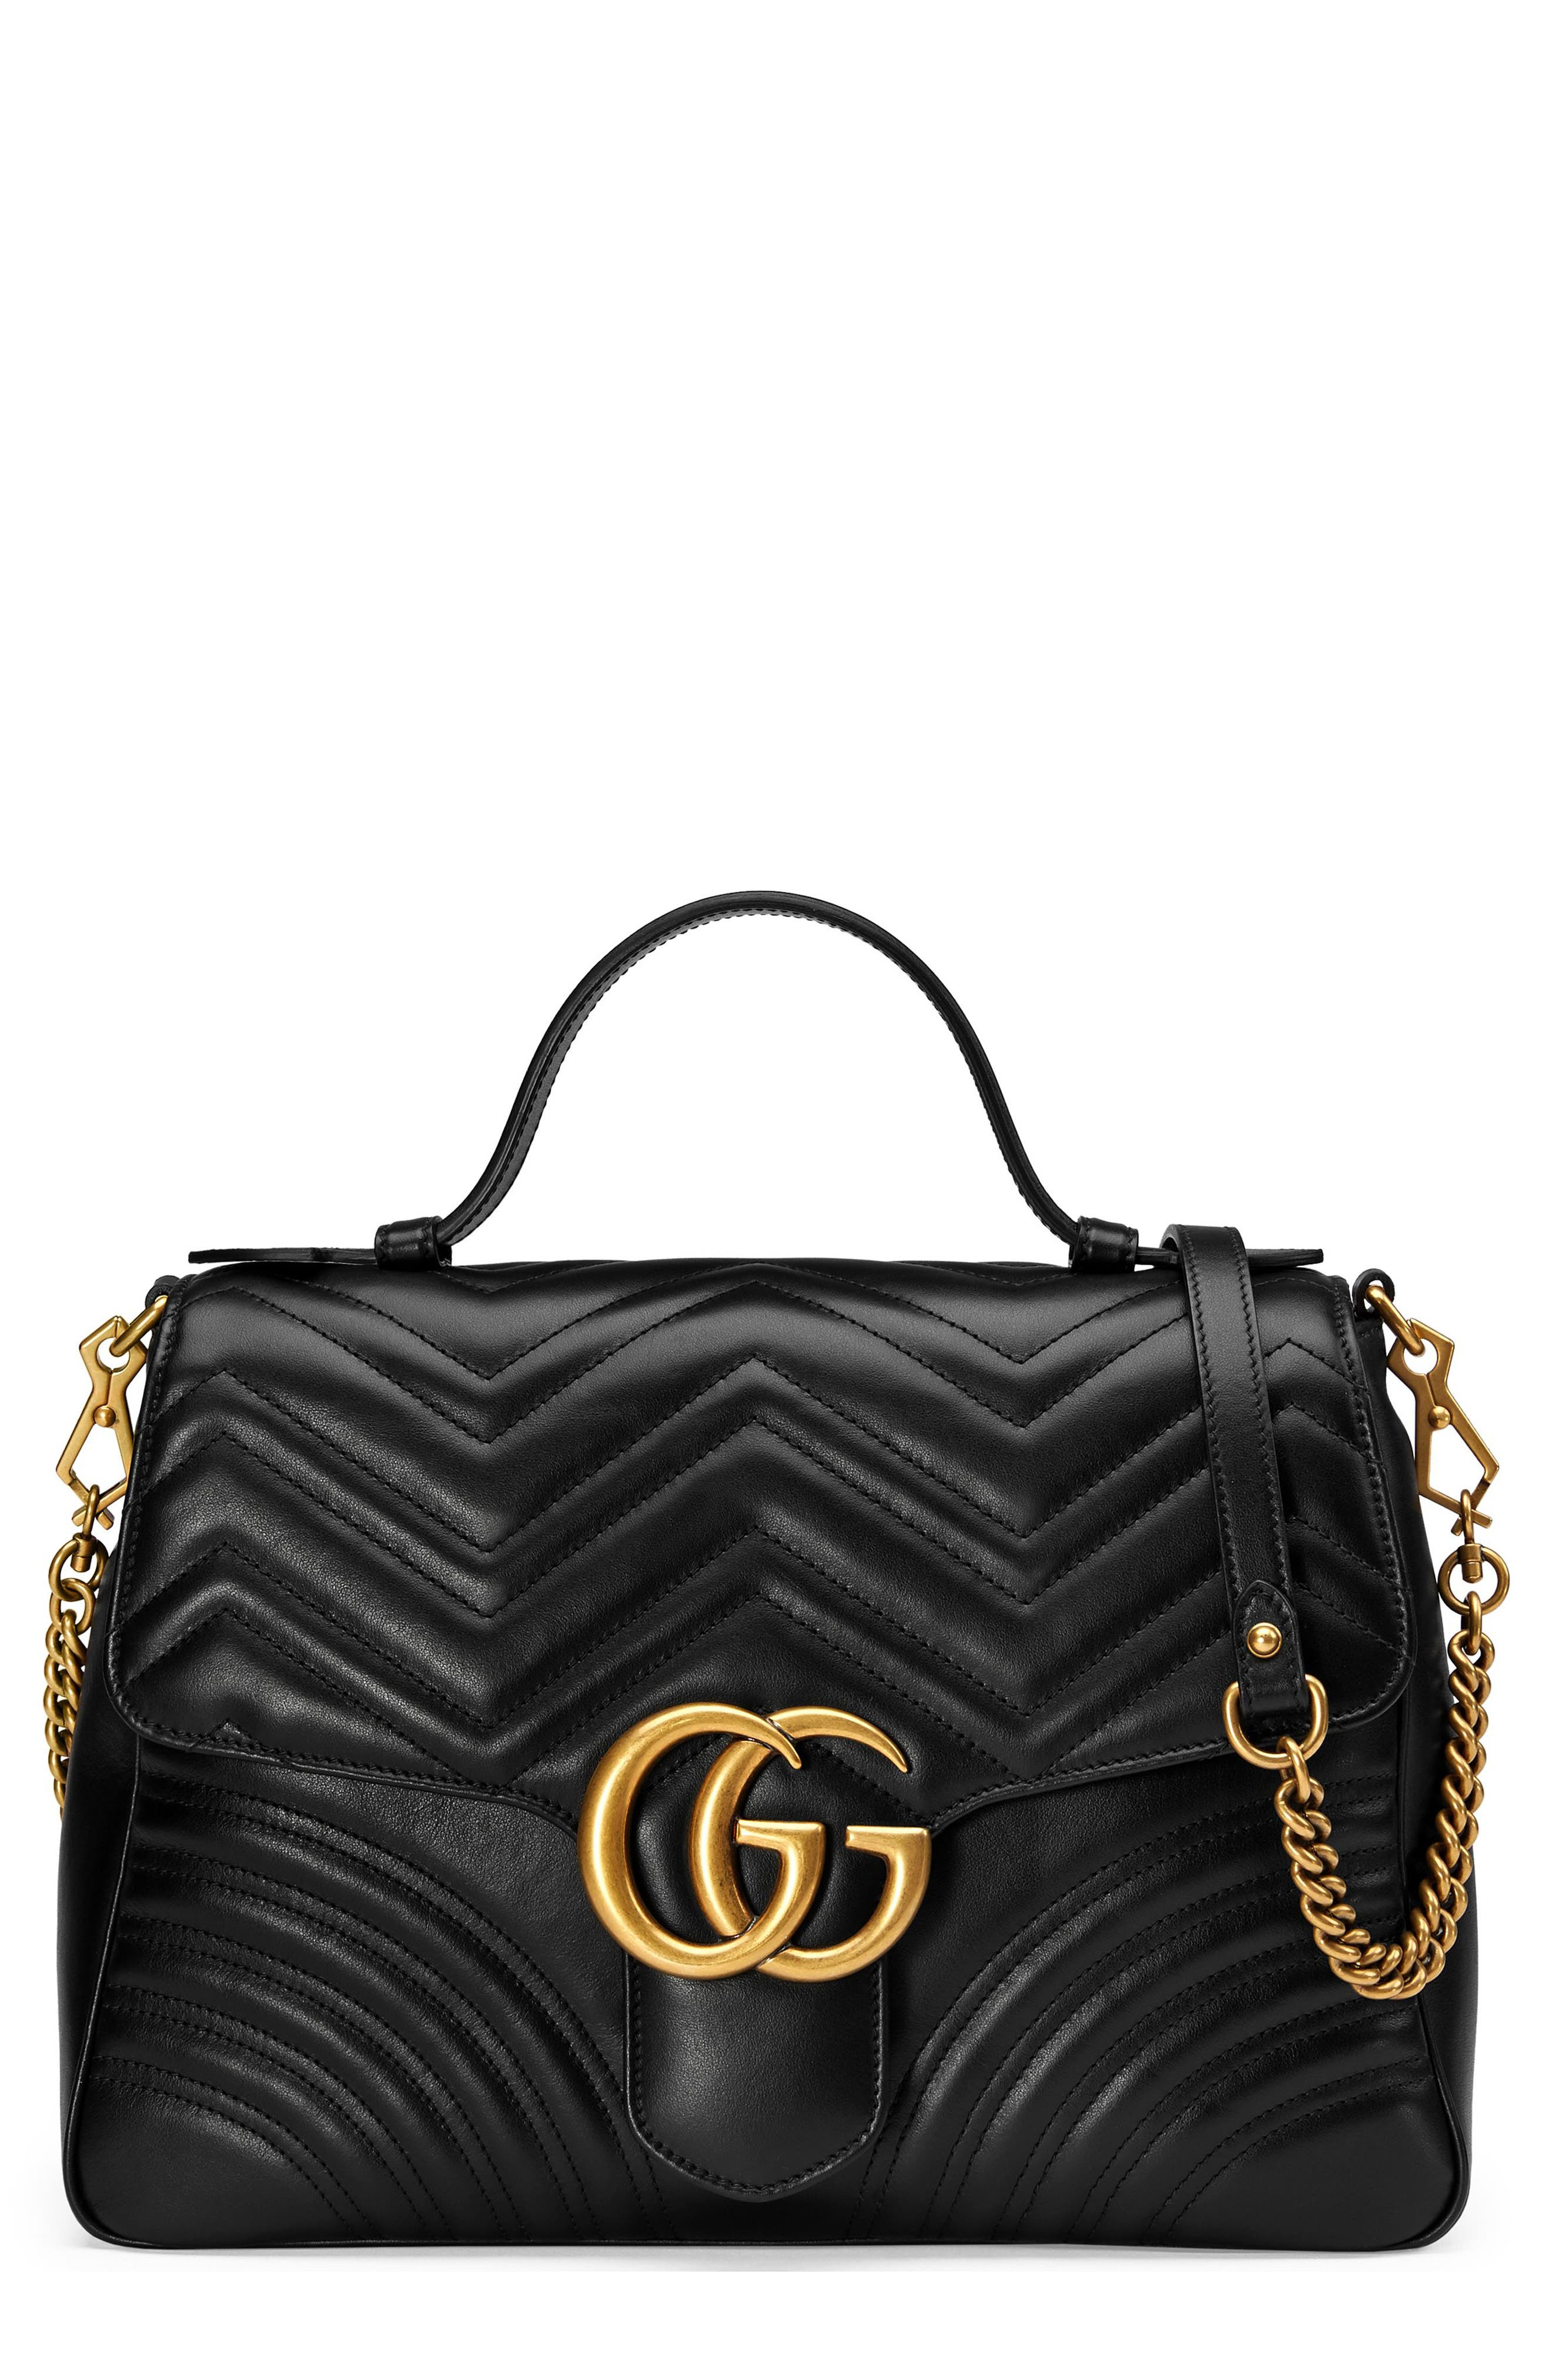 Medium GG Marmont 2.0 Matelassé Leather Top Handle Bag,                         Main,                         color, 005